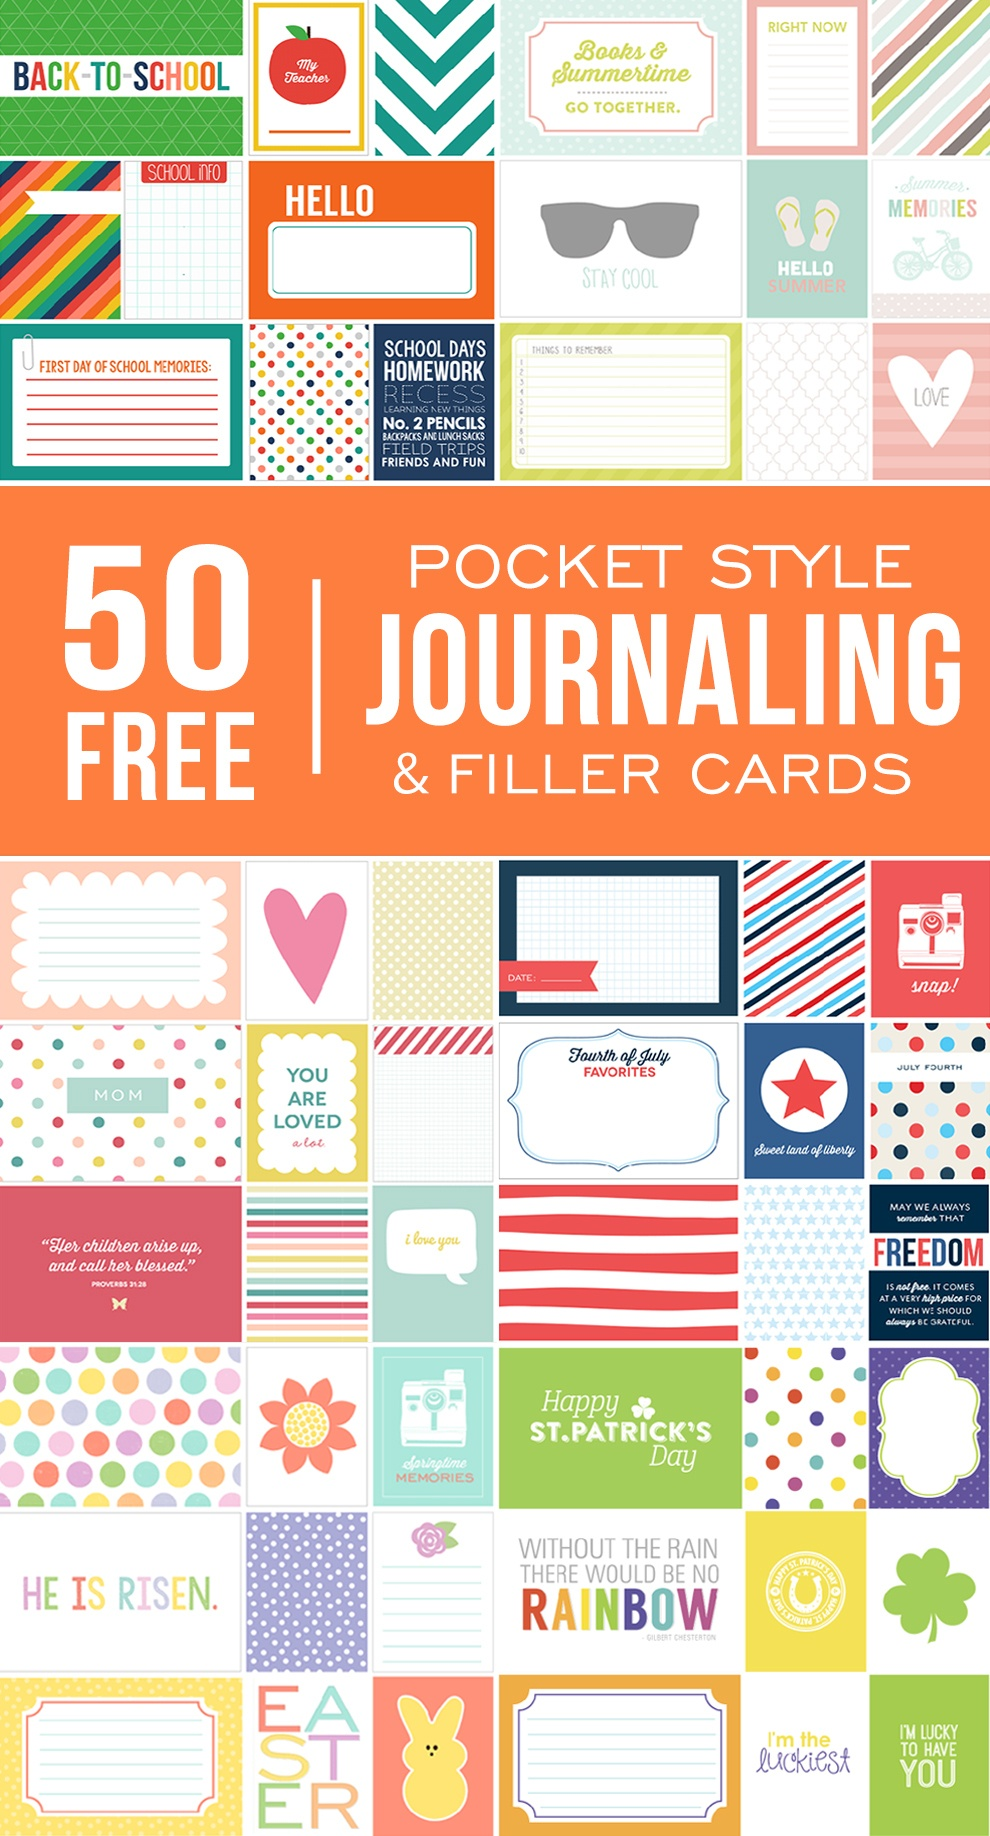 Ultimate Roundup Of Free Journaling + Filler Card Printables - Free Printable Picture Cards